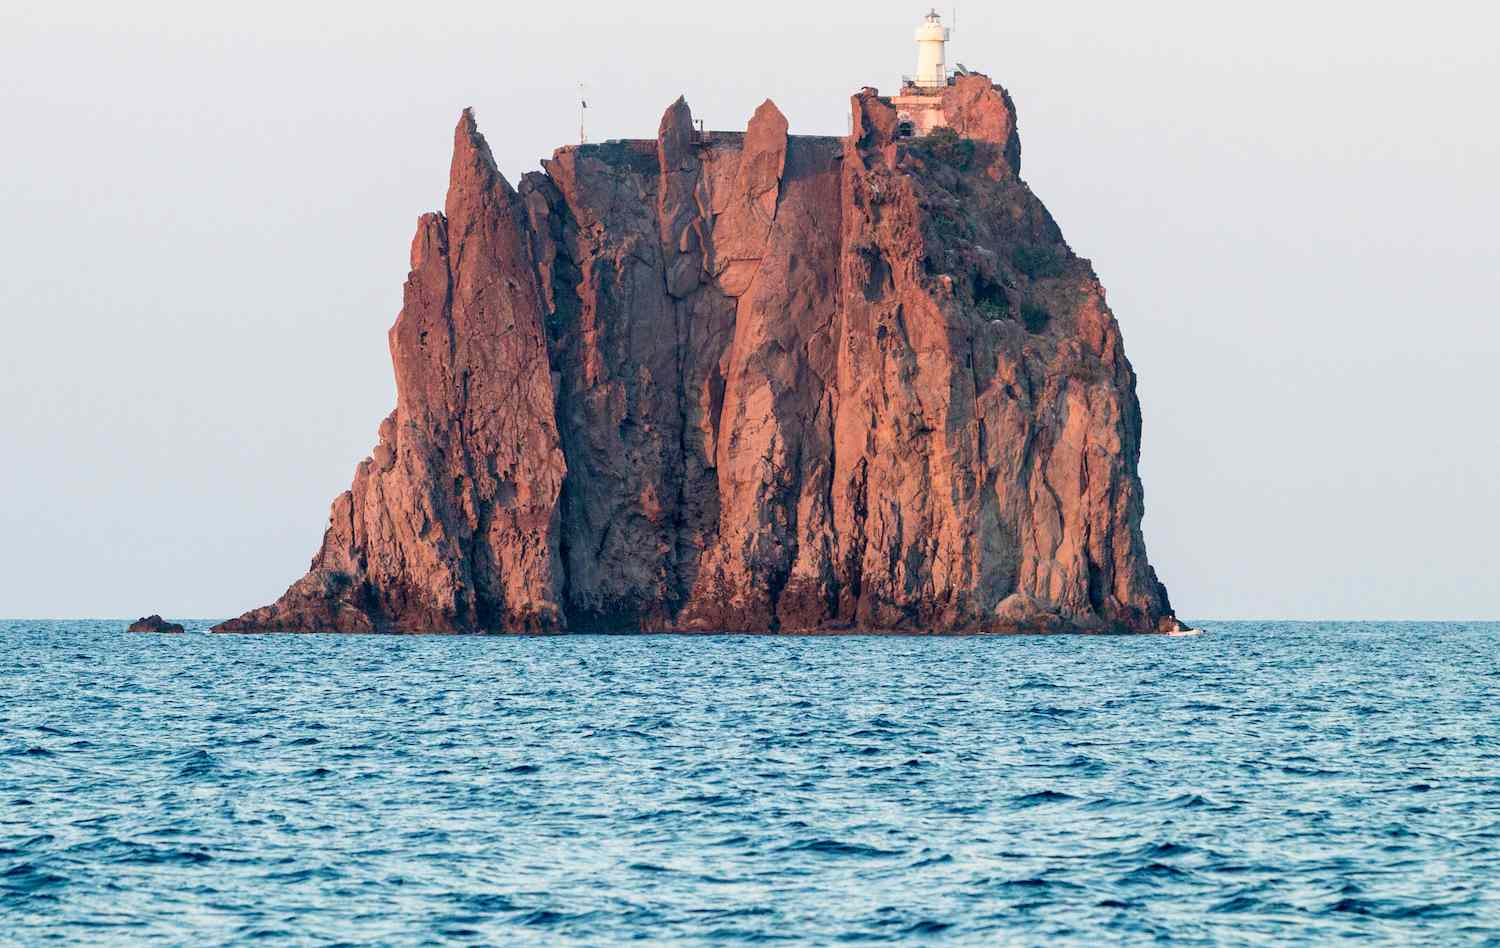 Strombolicchio Lighthouse sits atop a giant sea stack in the Aeolian Islands of Italy